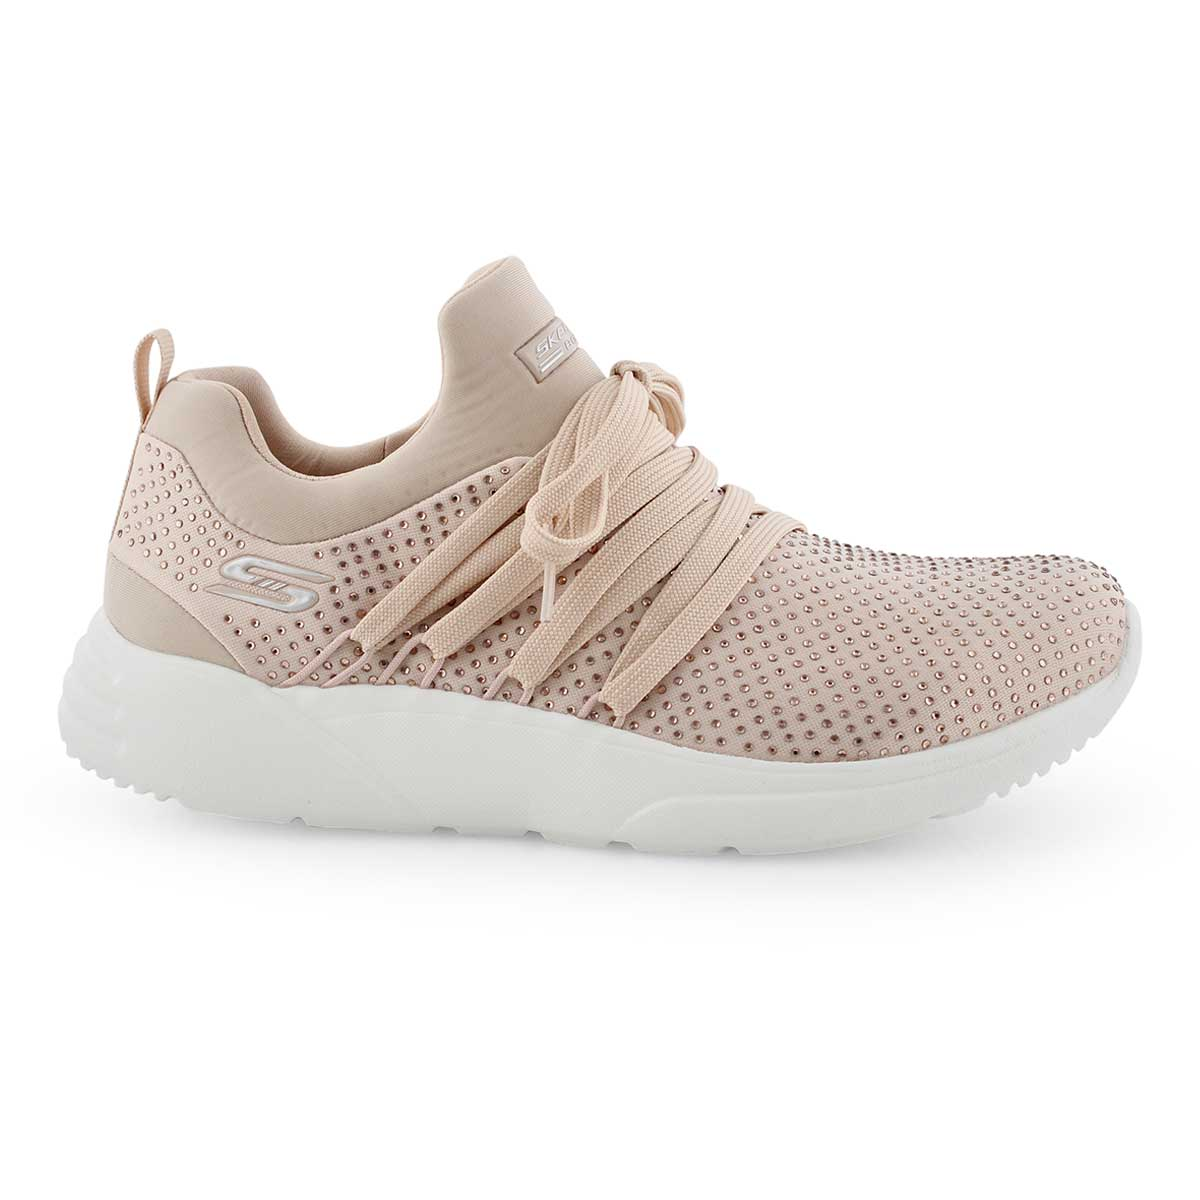 Lds Bobs Sparrow blush lace up snkr